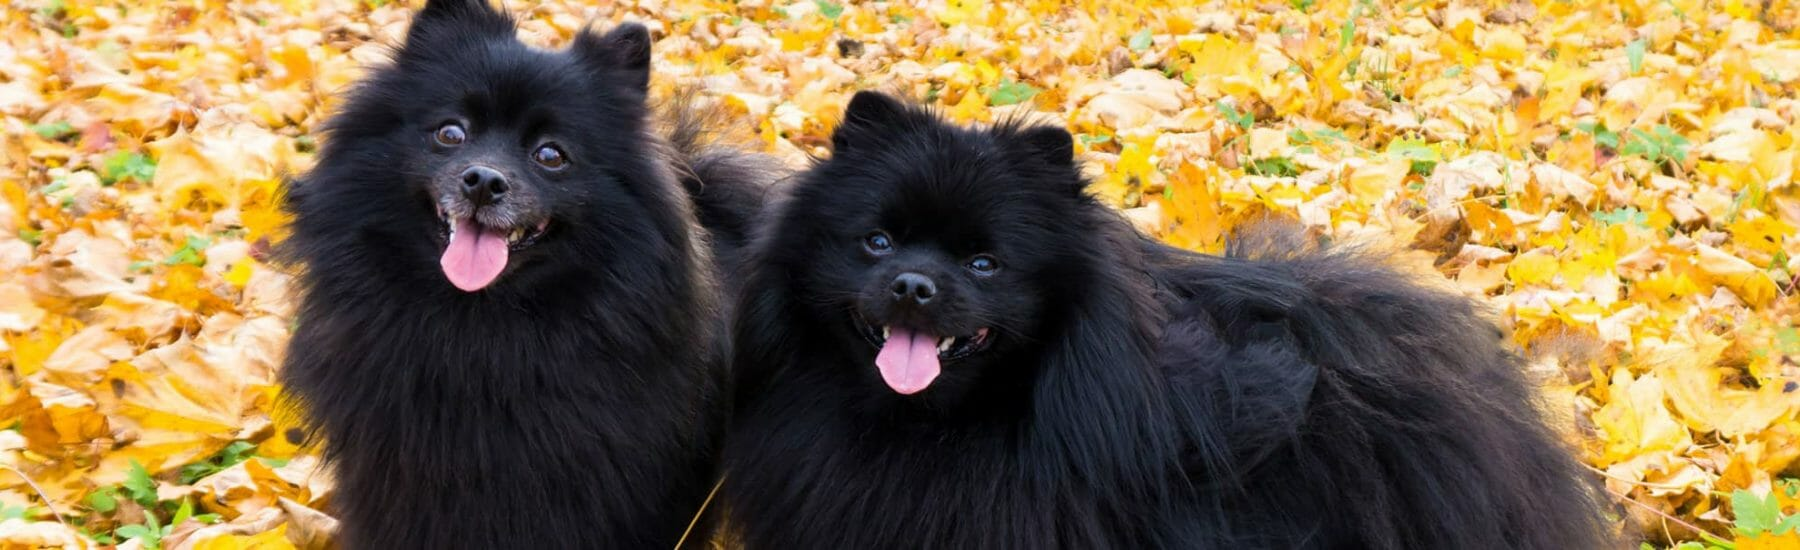 Two black dogs in the leaves looking towards the camera with their tongues out